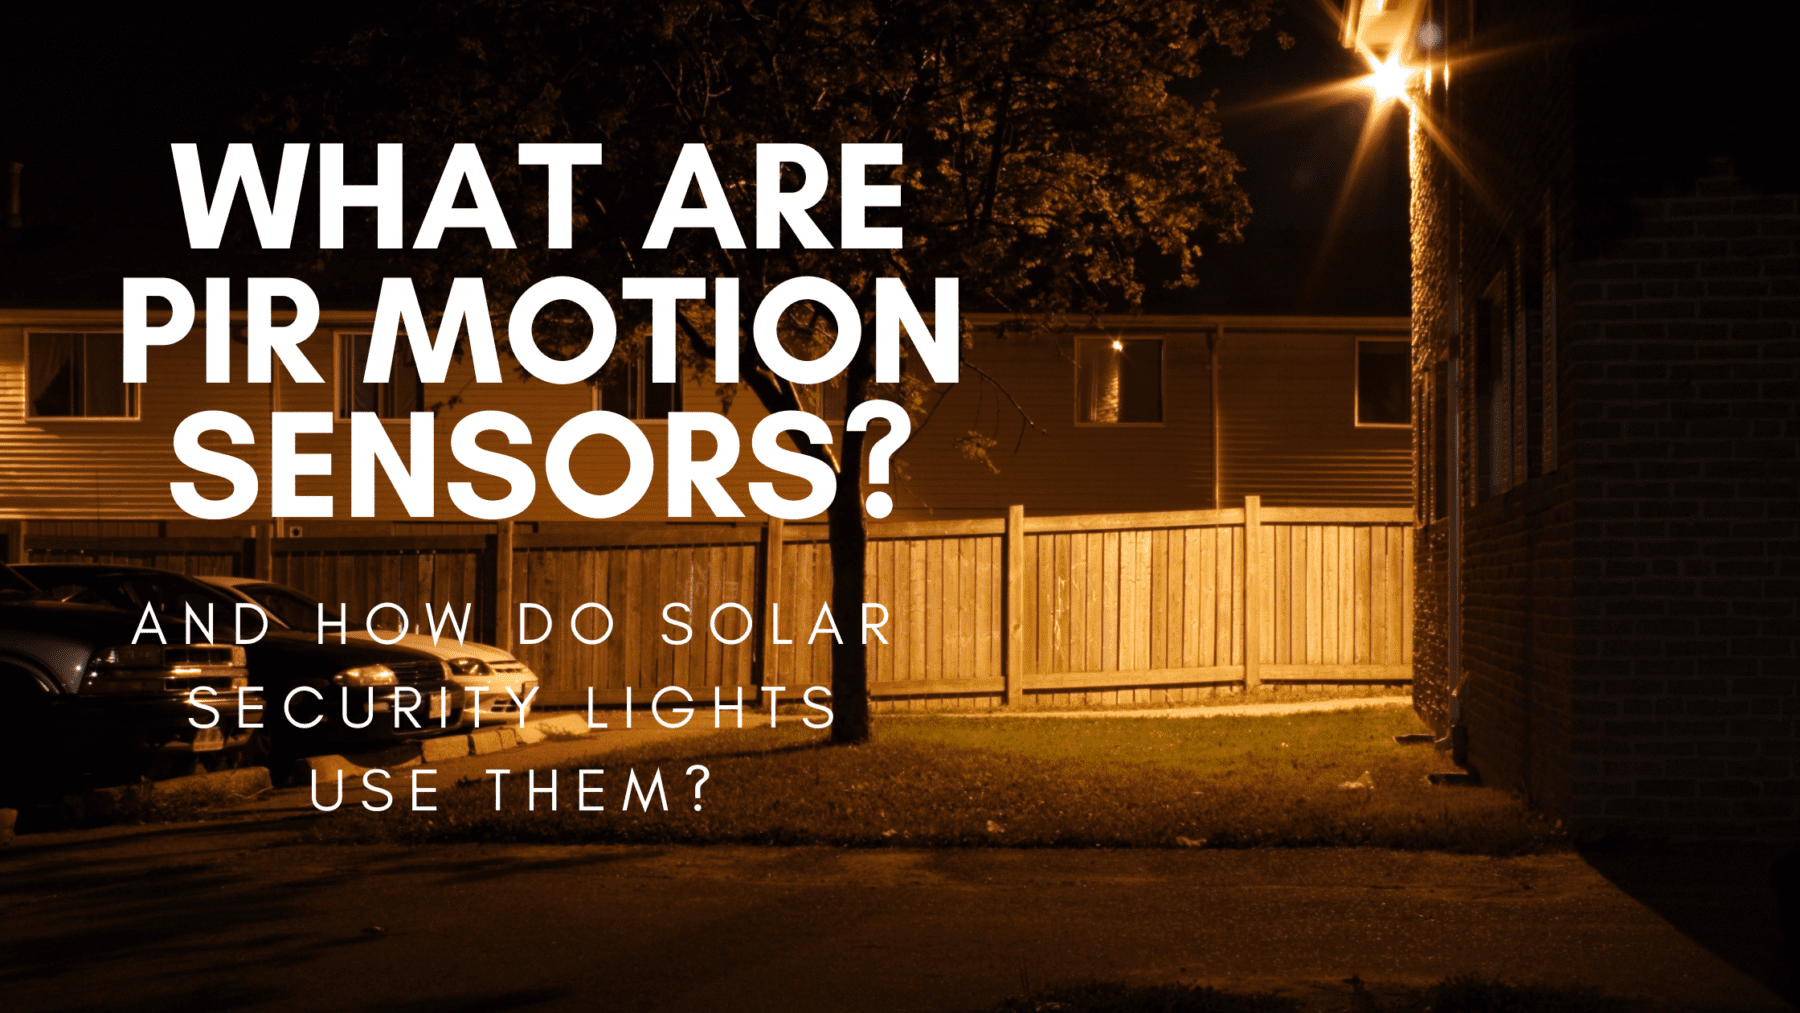 What are PIR motion sensors?